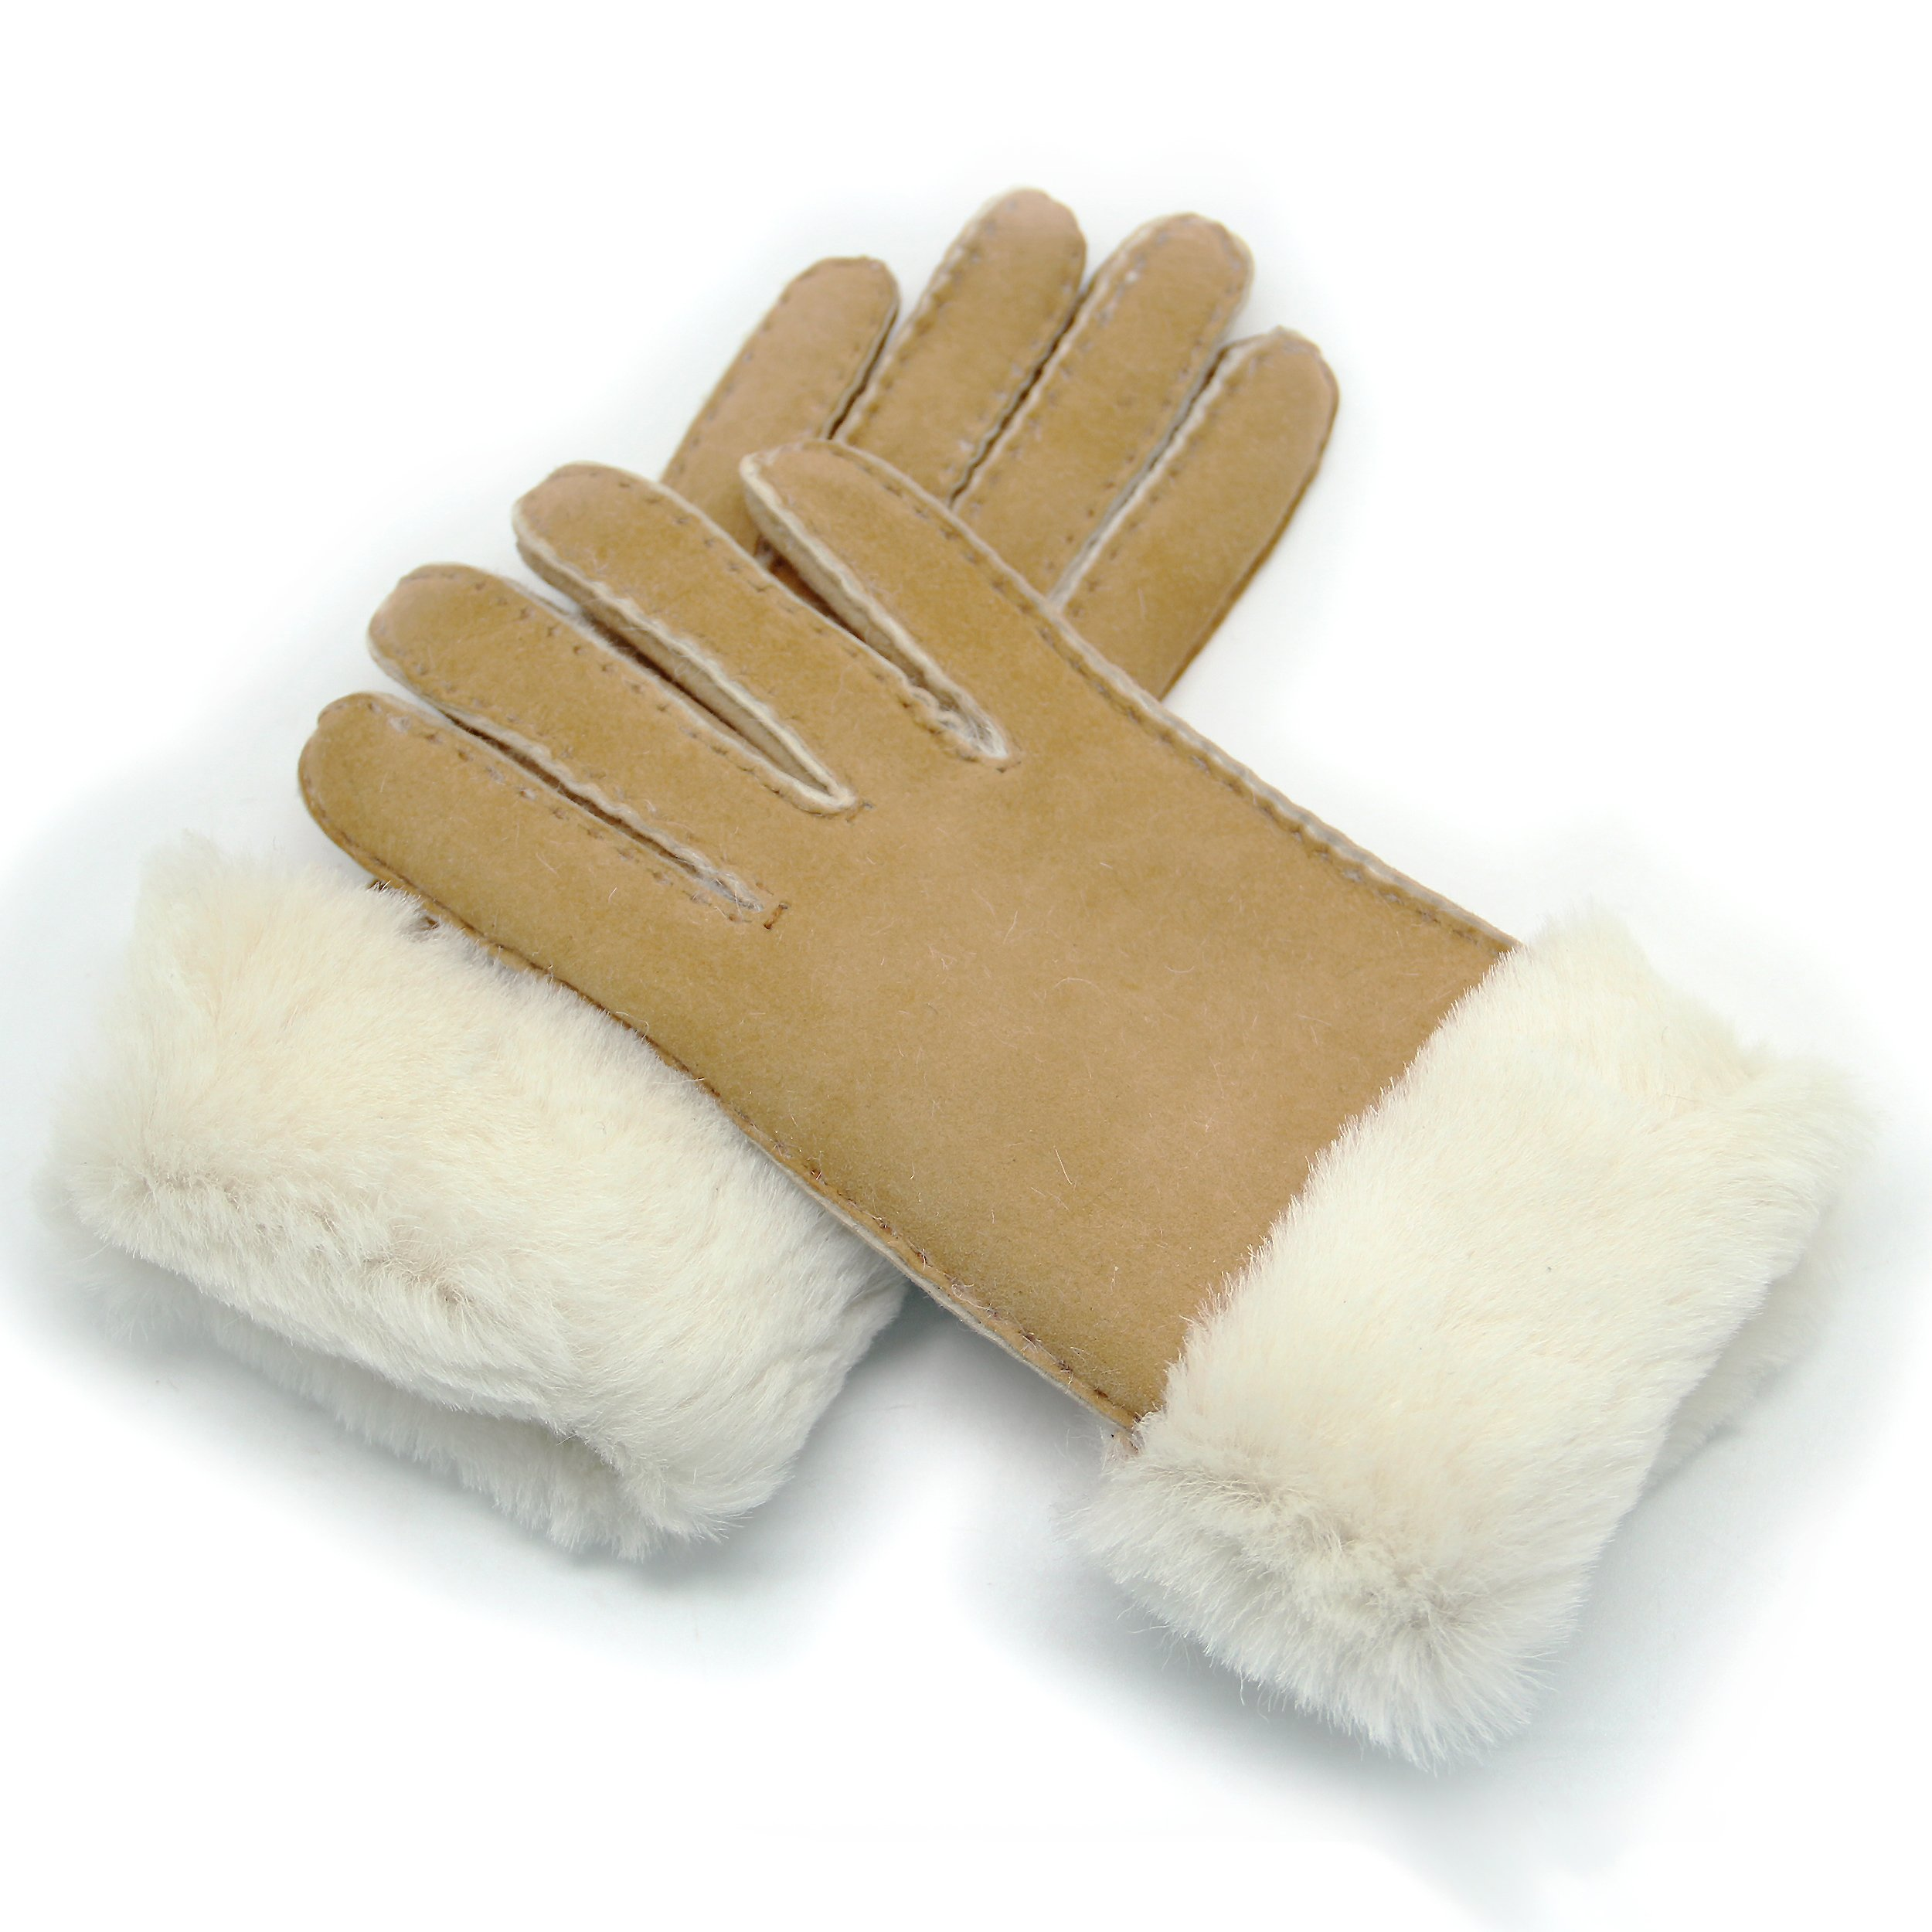 YISEVEN Women's Rugged Sheepskin Shearling Leather Gloves Plain Flat Design Soft Thick Furry Fur Lined Warm Heated Lining Cuffs for Winter Cold Weather Dress Driving Work Xmas Gifts, Khaki Small